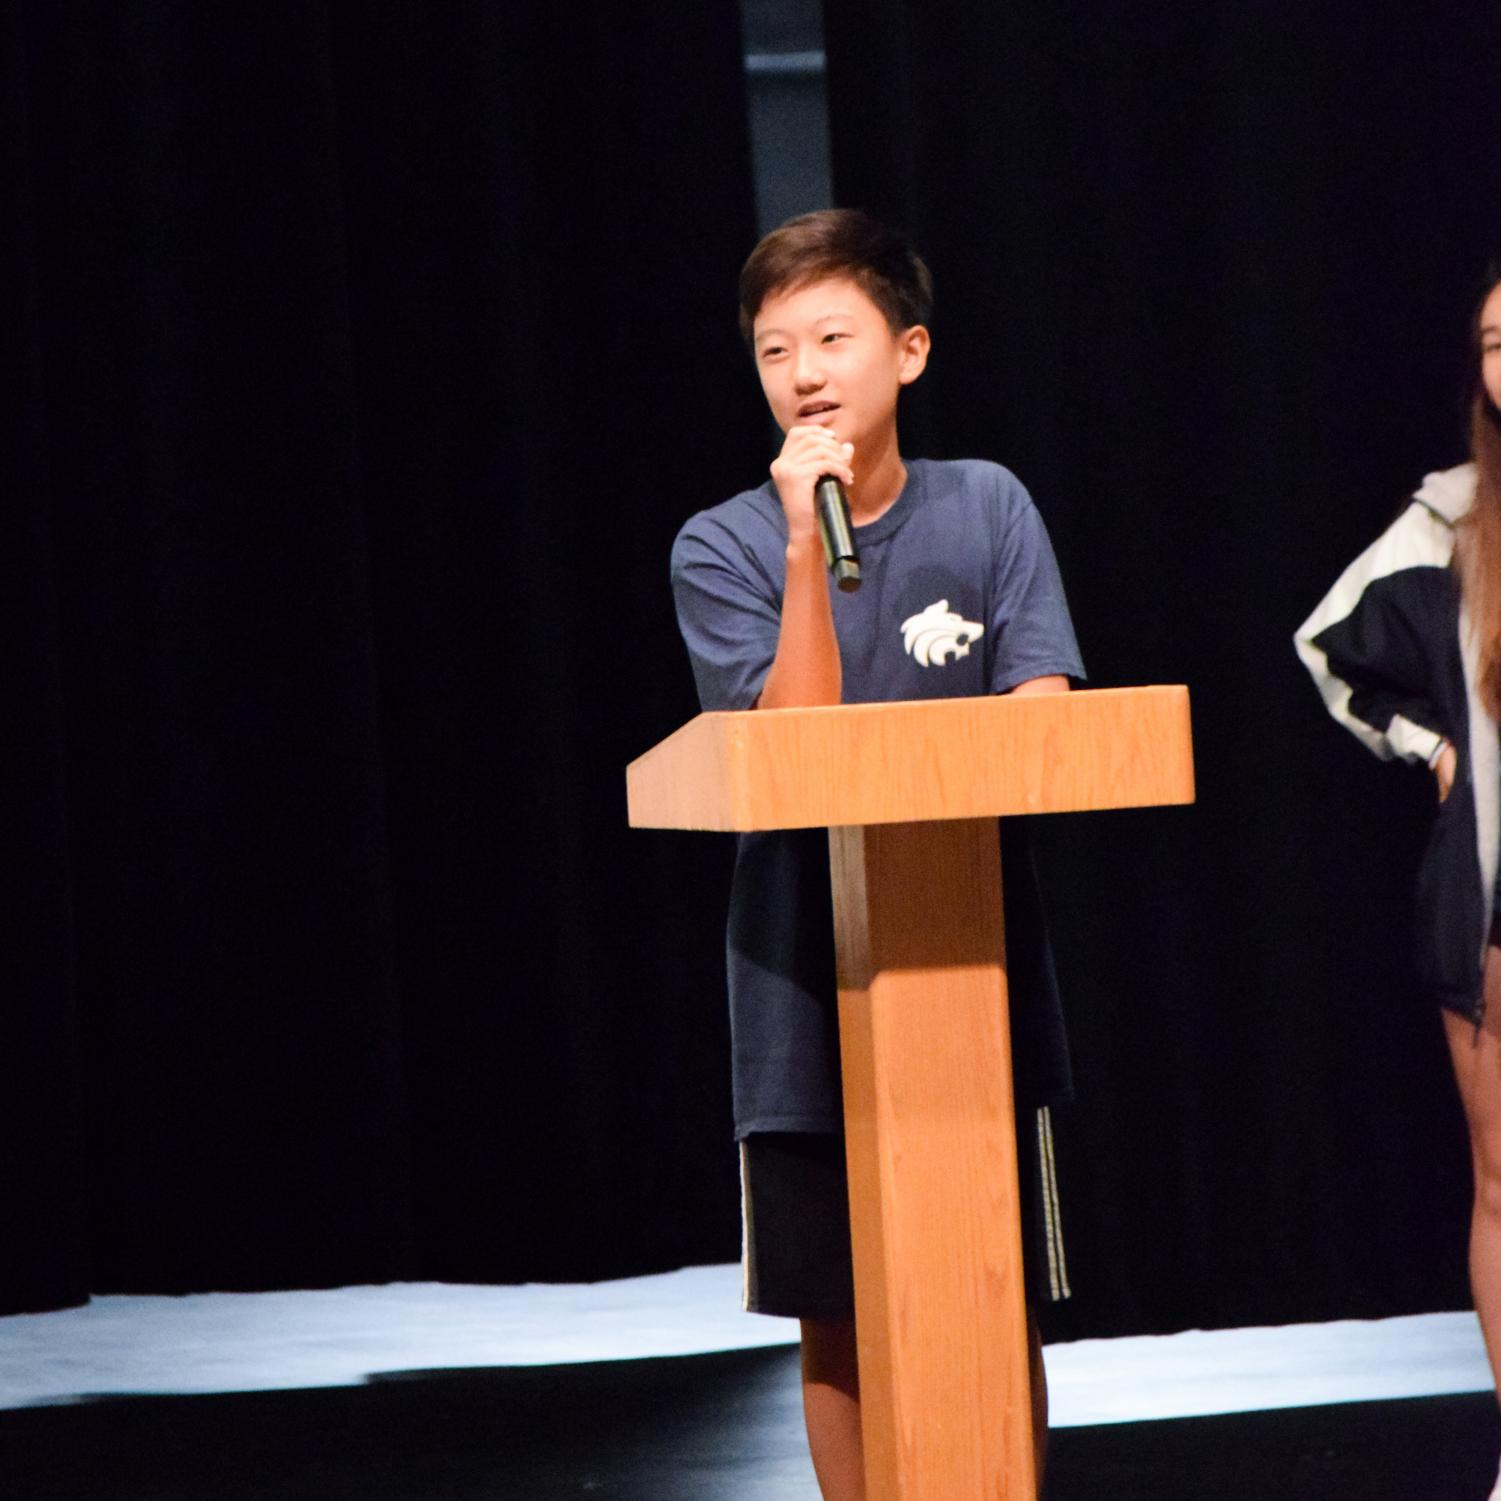 YOUR NEW ASB MEMBERS: Election winner freshman Sean Lee gives his campaign speech on why fellow students should vote for him.